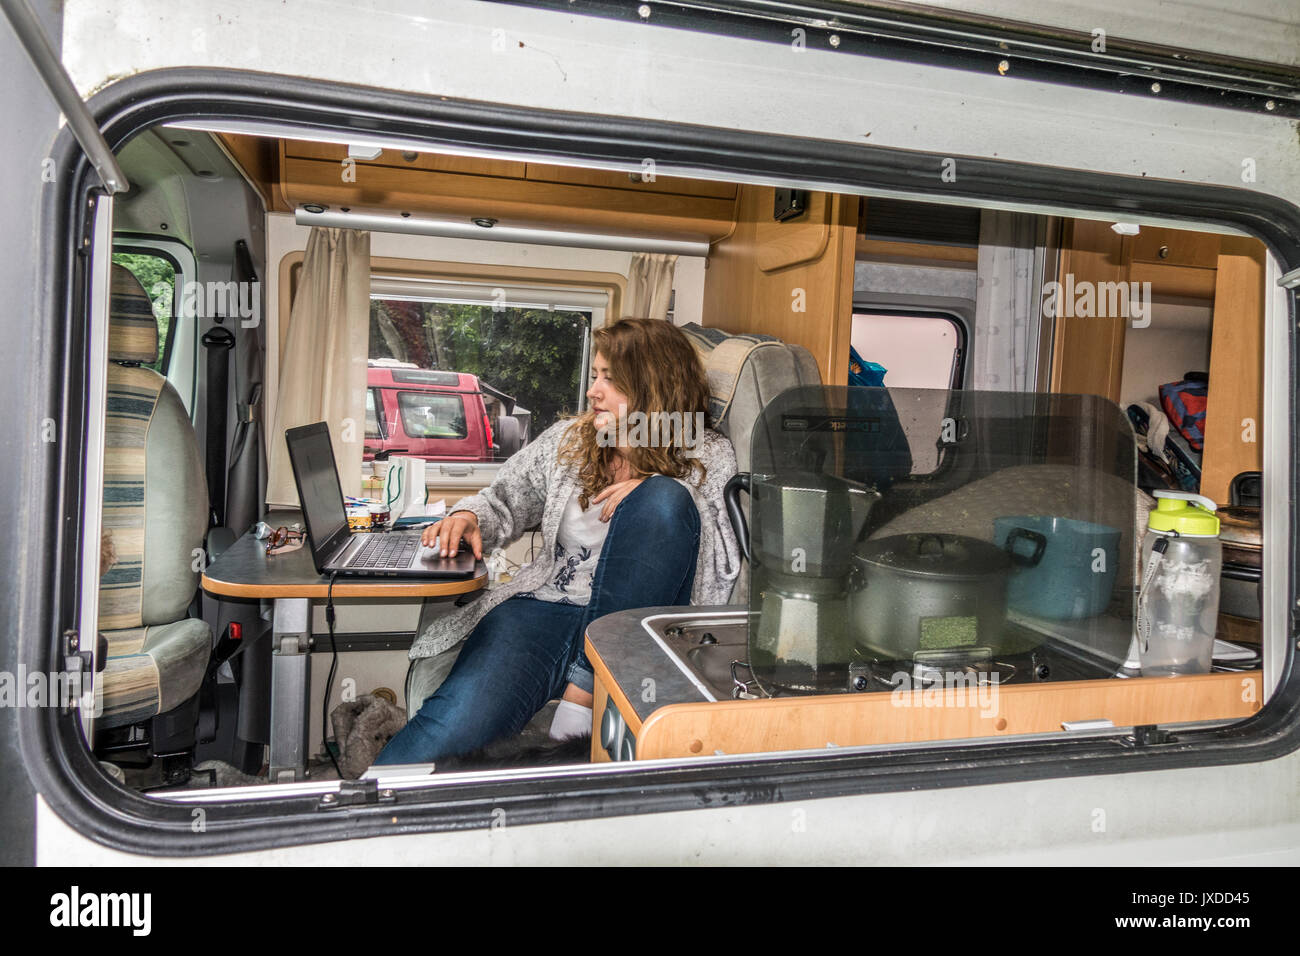 A pretty young woman in a motorhome on a campsite, sitting at her laptop computer. Lydford, Devon, England, UK. - Stock Image